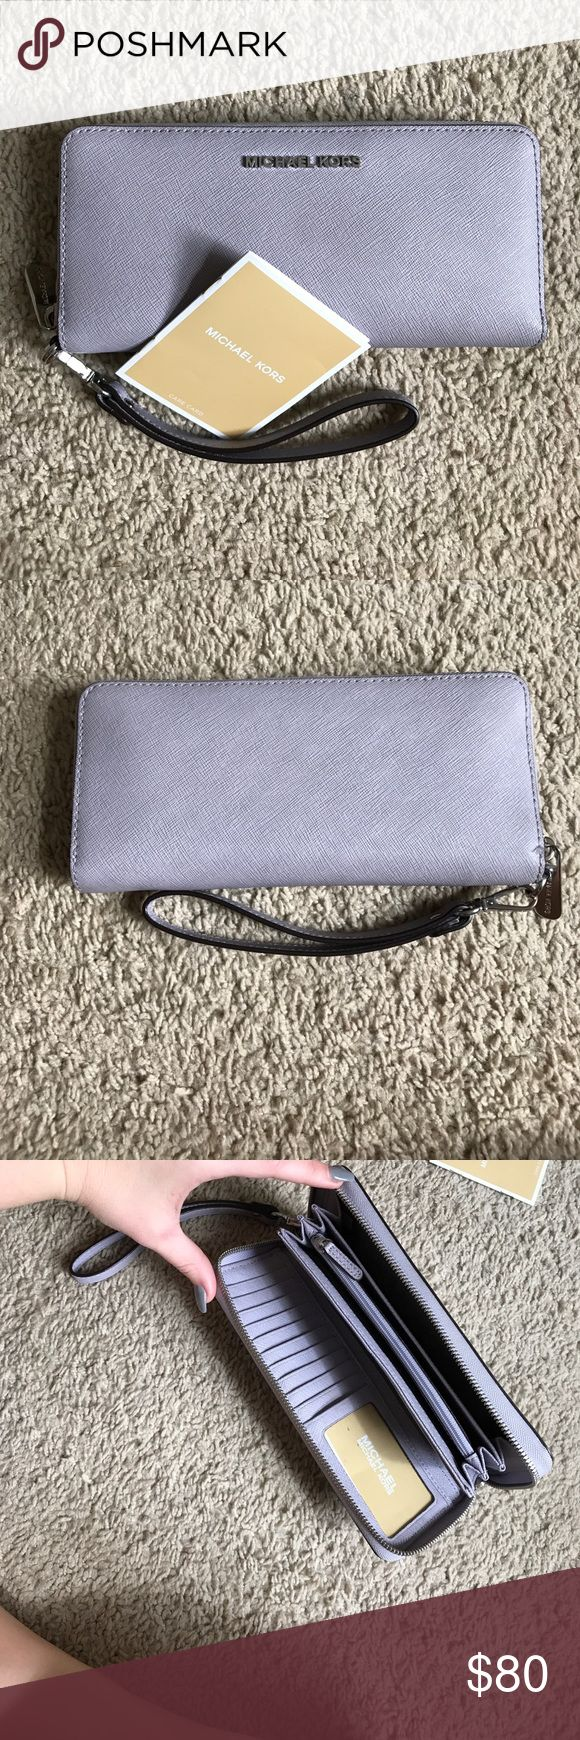 Michael Kors wallet MICHAEL KORS Jet set Lilac wallet Michael Kors Bags Wallets